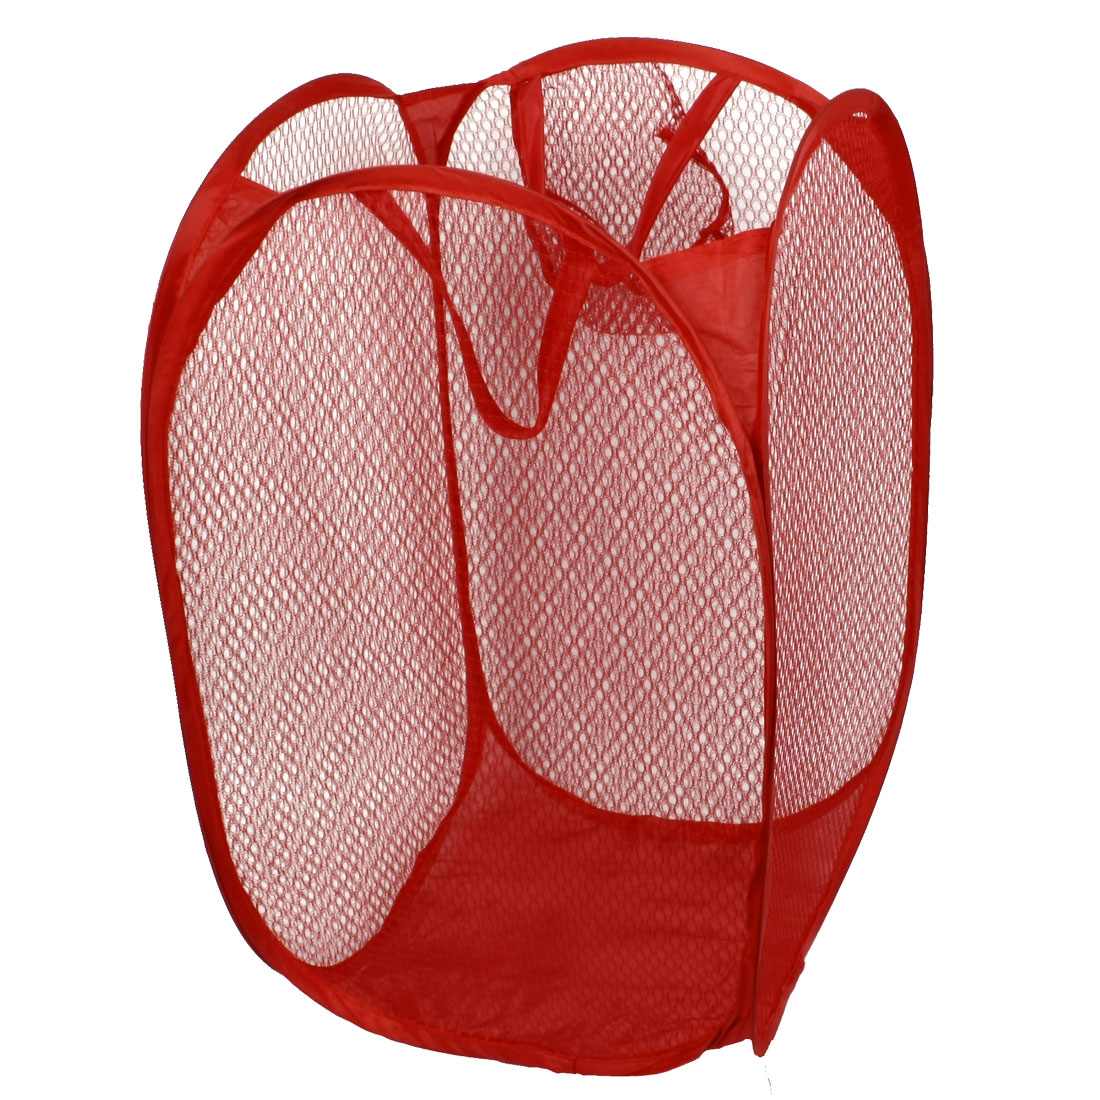 Household Dirty Clothes Laundry Folding Mesh Bag Basket Holder Red